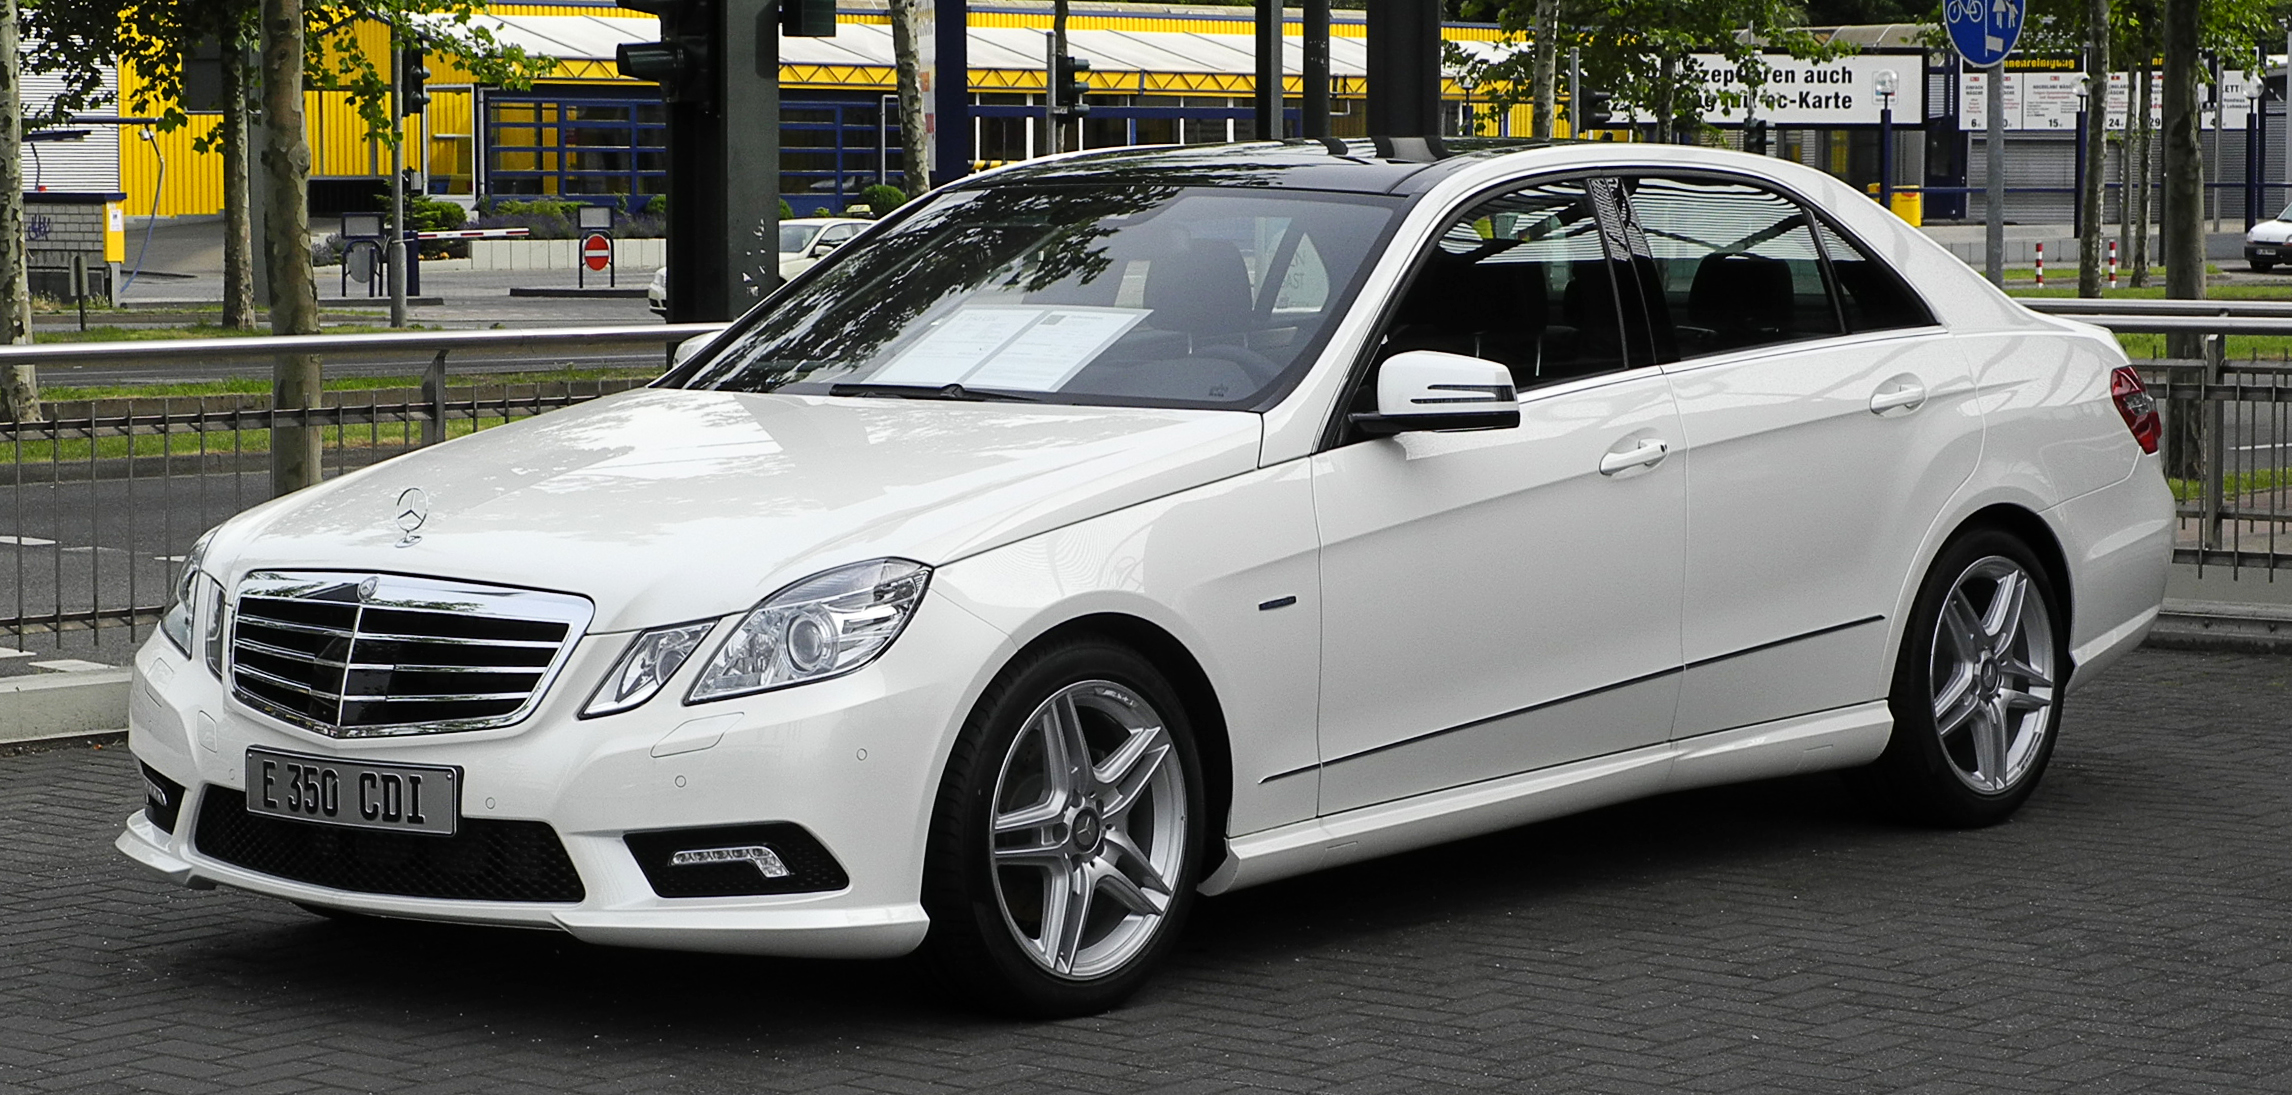 mercedes benz e 350 cdi 4matic photos and comments www. Black Bedroom Furniture Sets. Home Design Ideas